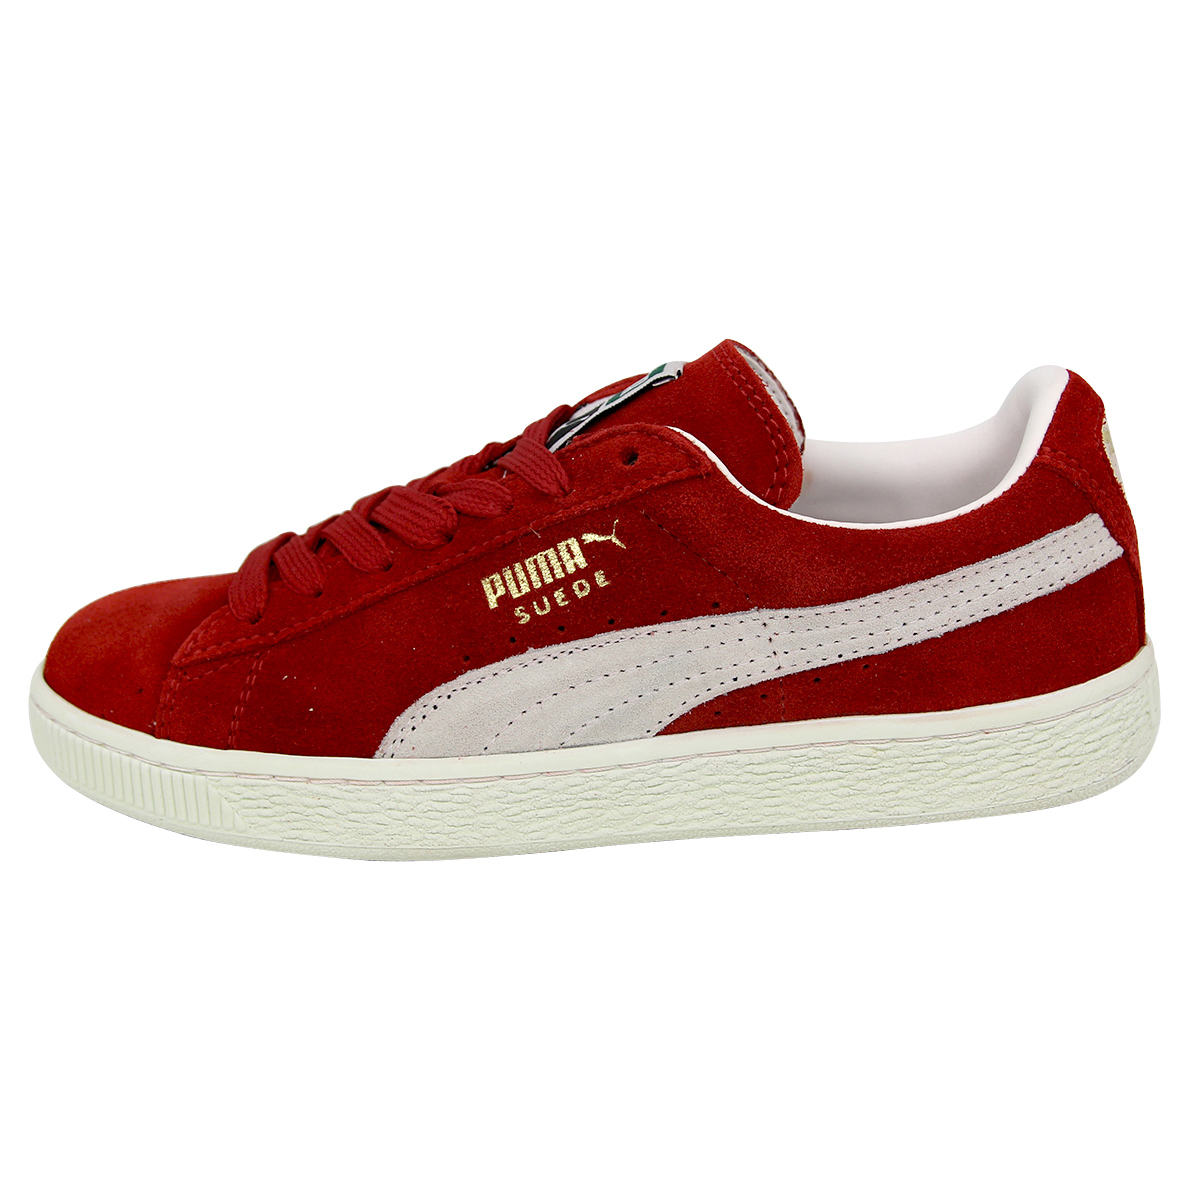 Puma-SUEDE-CLASSIC-ECO-Chaussures-Mode-Sneakers-Unisex-Cuir-Suede miniature 13